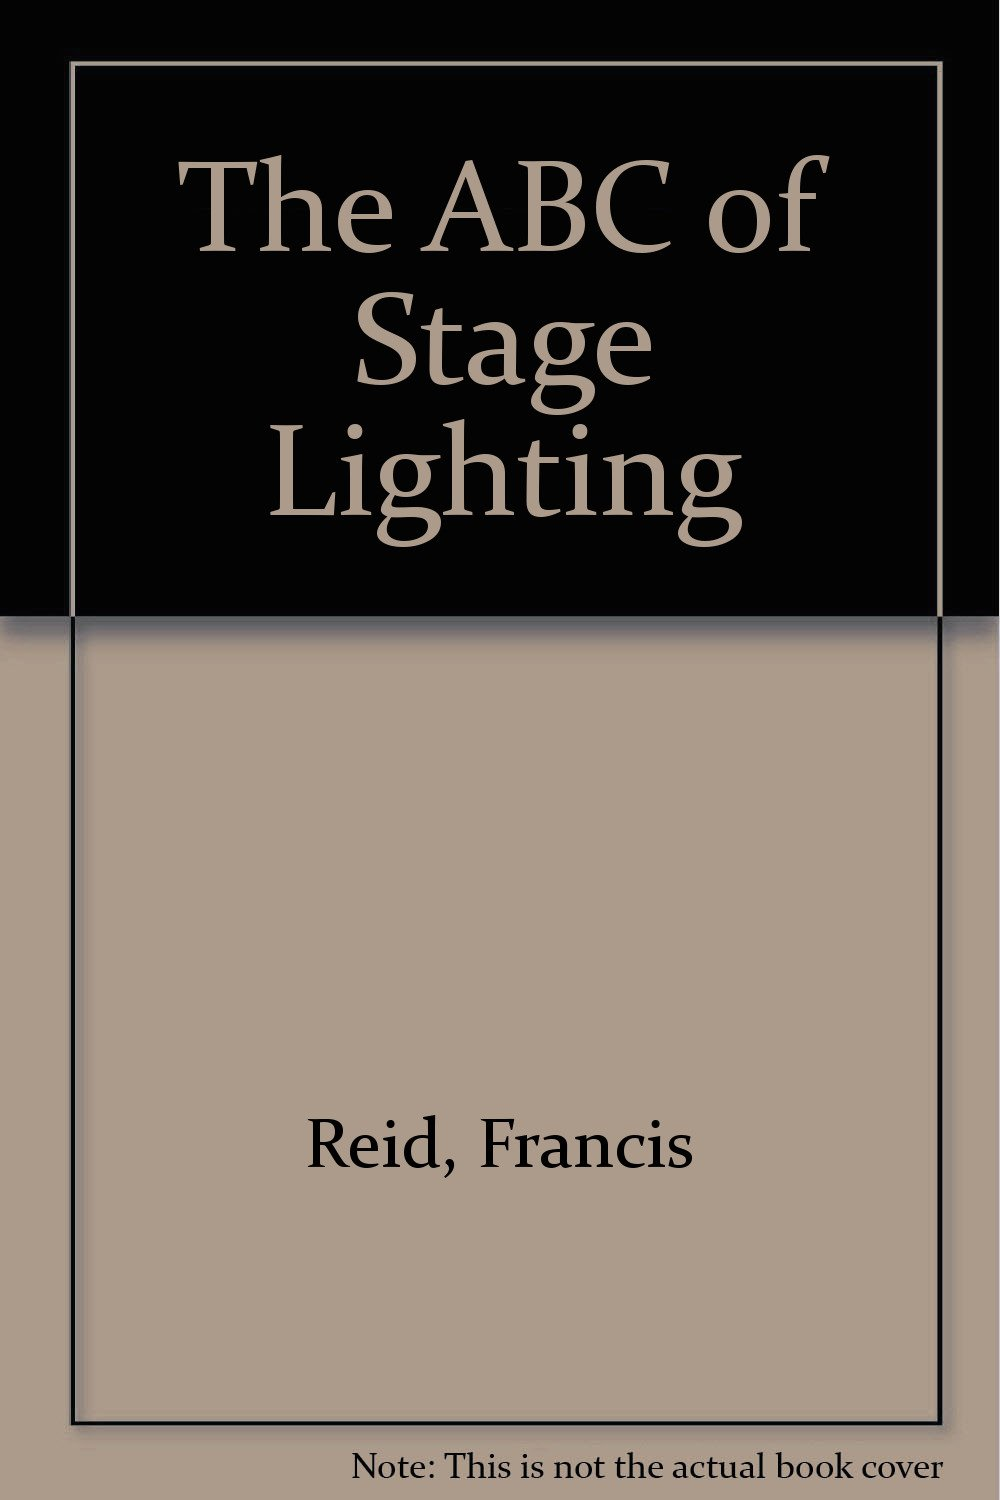 The ABC of Stage Lighting